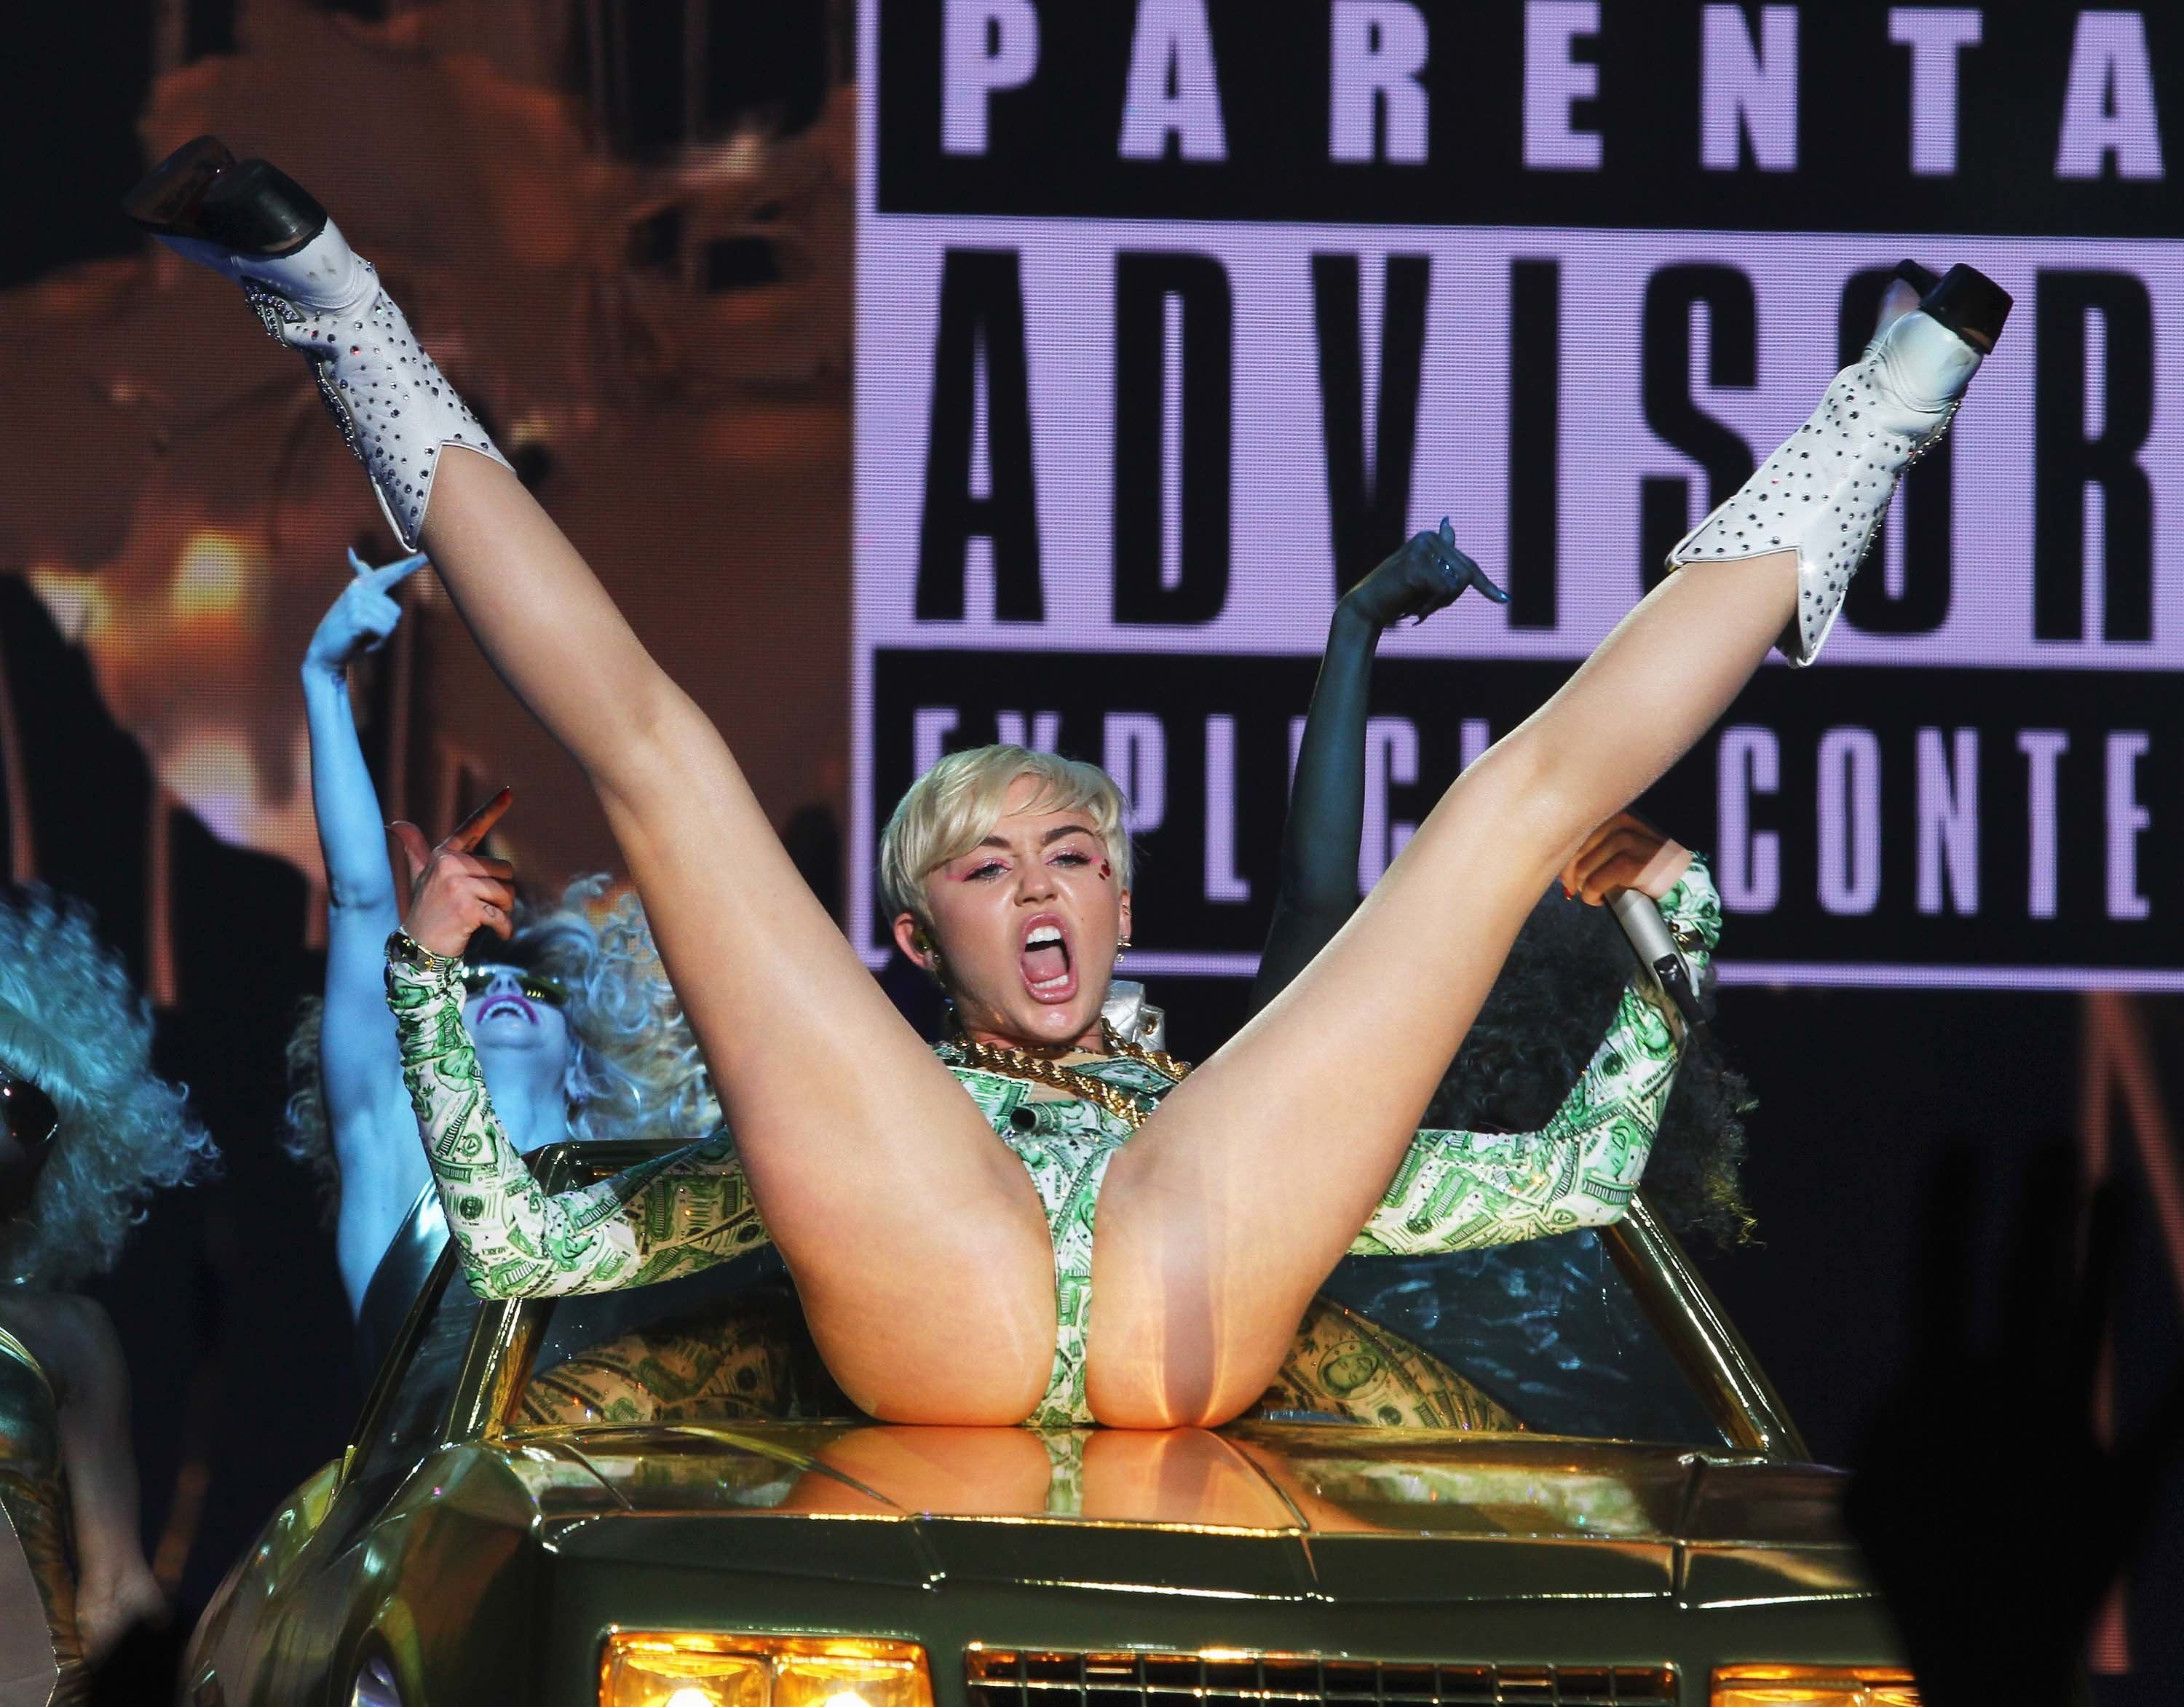 DUBLIN, IRELAND - MAY 20:  Miley Cyrus performs at the 02 on May 20, 2014 in Dublin, Ireland.  (Photo by Phillip Massey/WireImage)